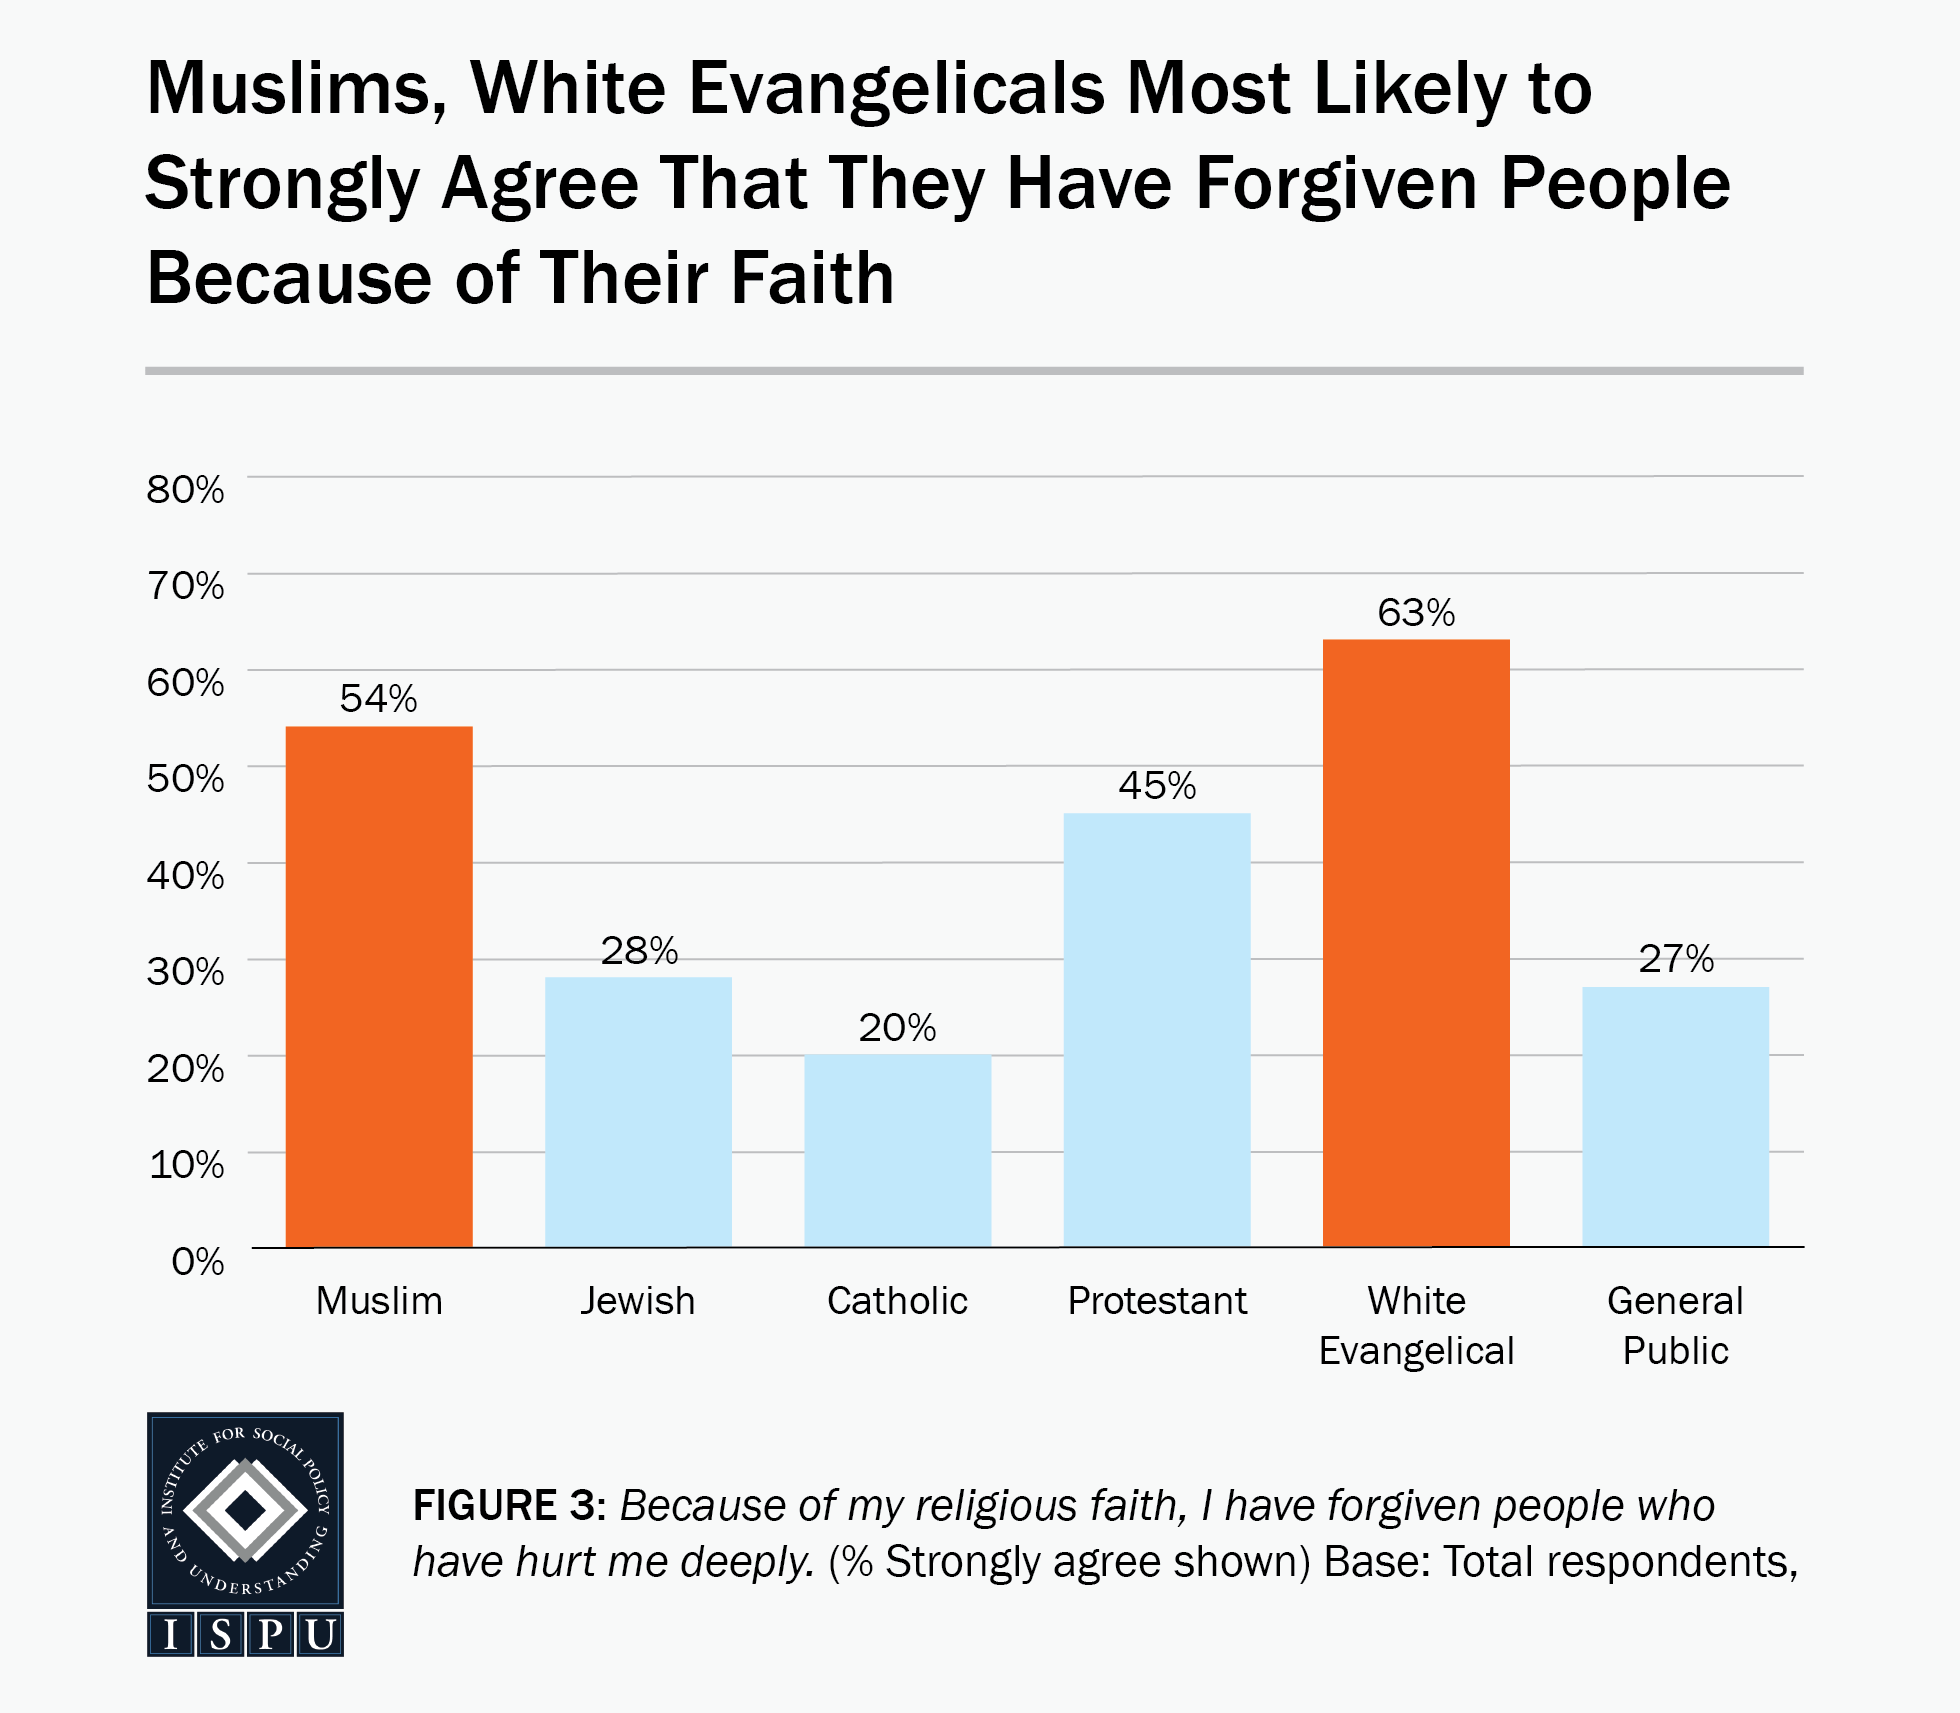 Figure 3: A bar graph showing that Muslims (54%) and White Evangelicals (63%) are the most likely faith groups to strongly agree that they have forgiven people because of their faith